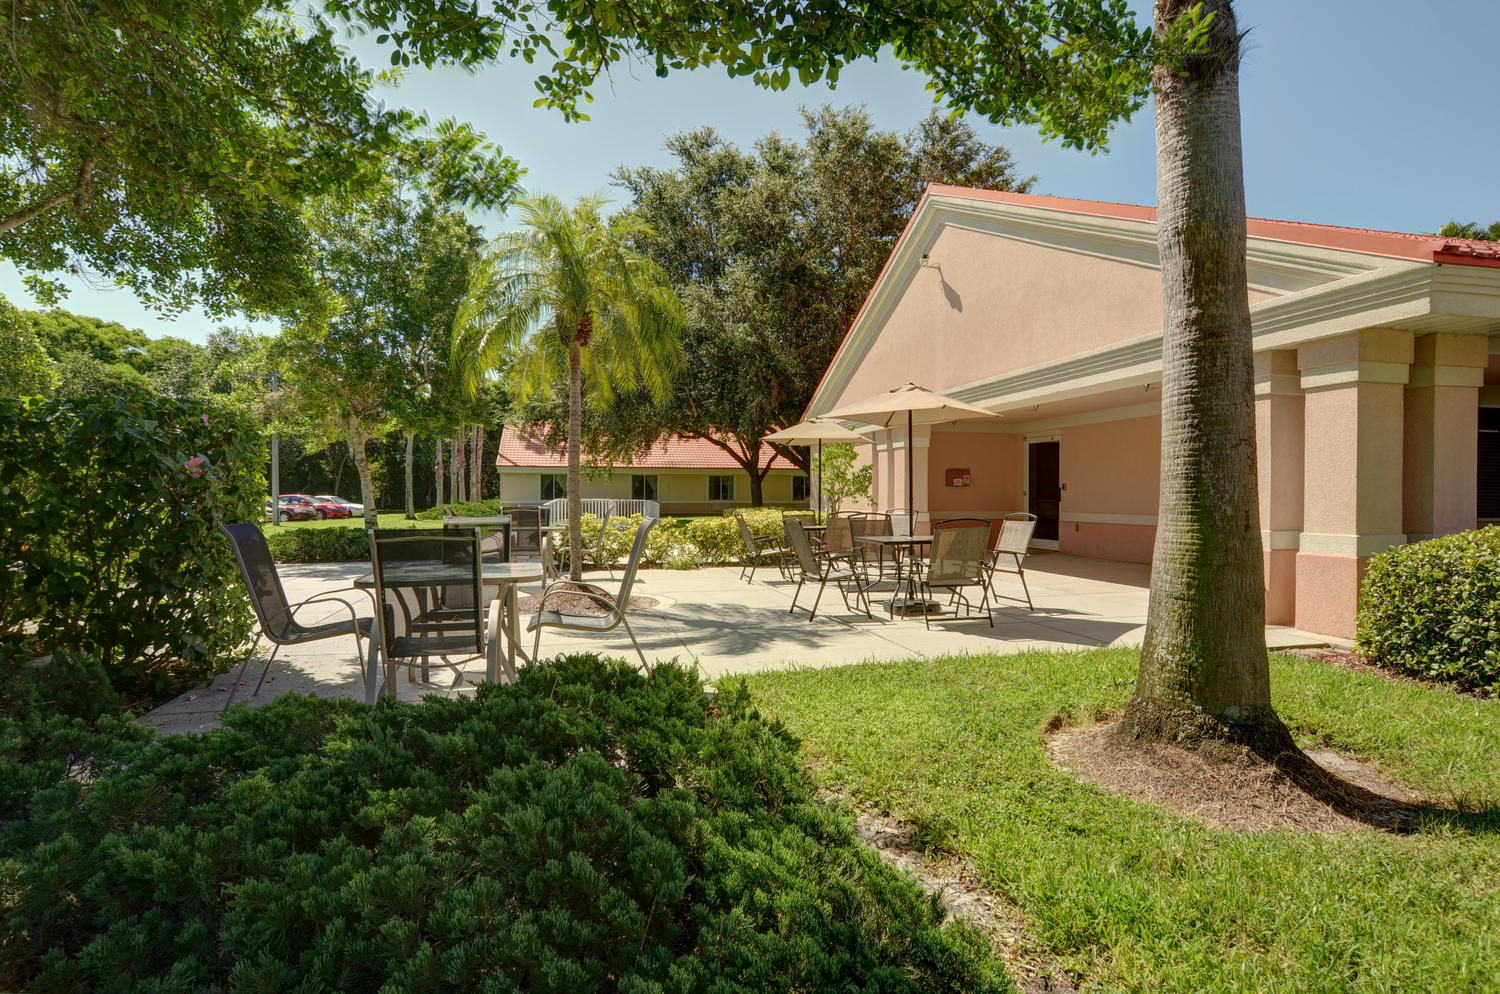 Heartland Health Care & Rehabilitation Center-Sarasota - Heartland